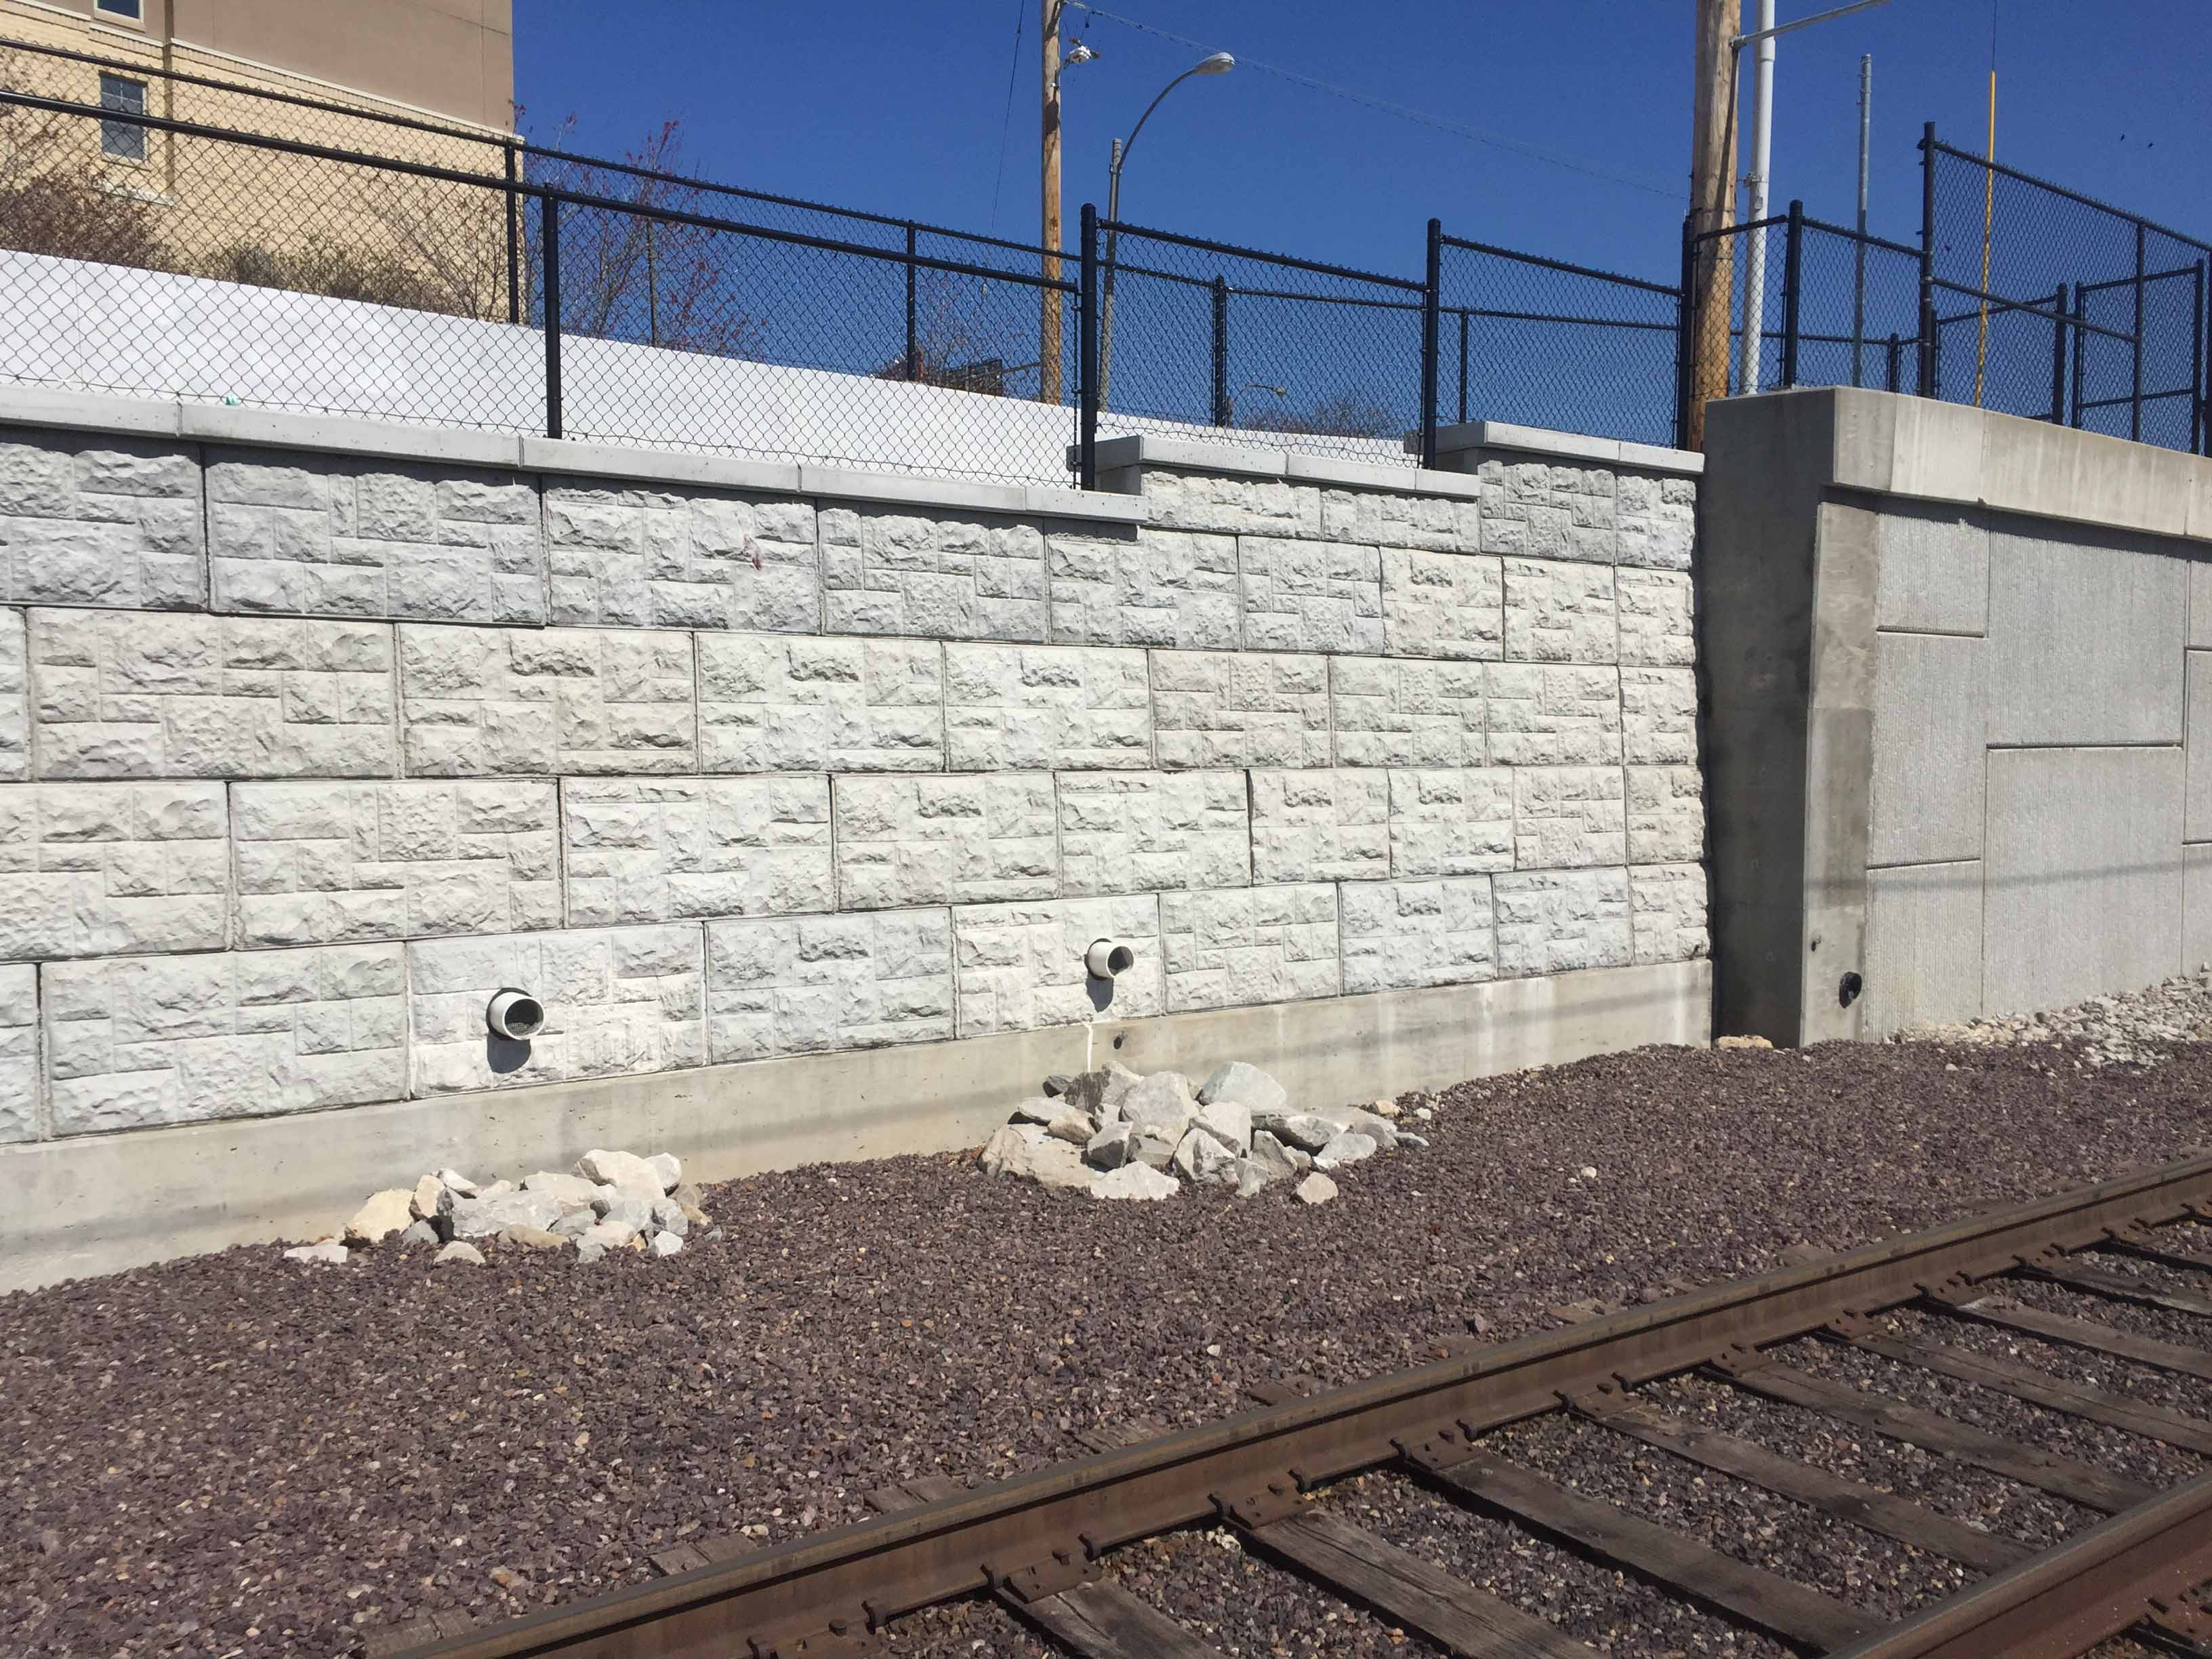 MagnumStone castle face retaining wall in st louis missouri with good drainage